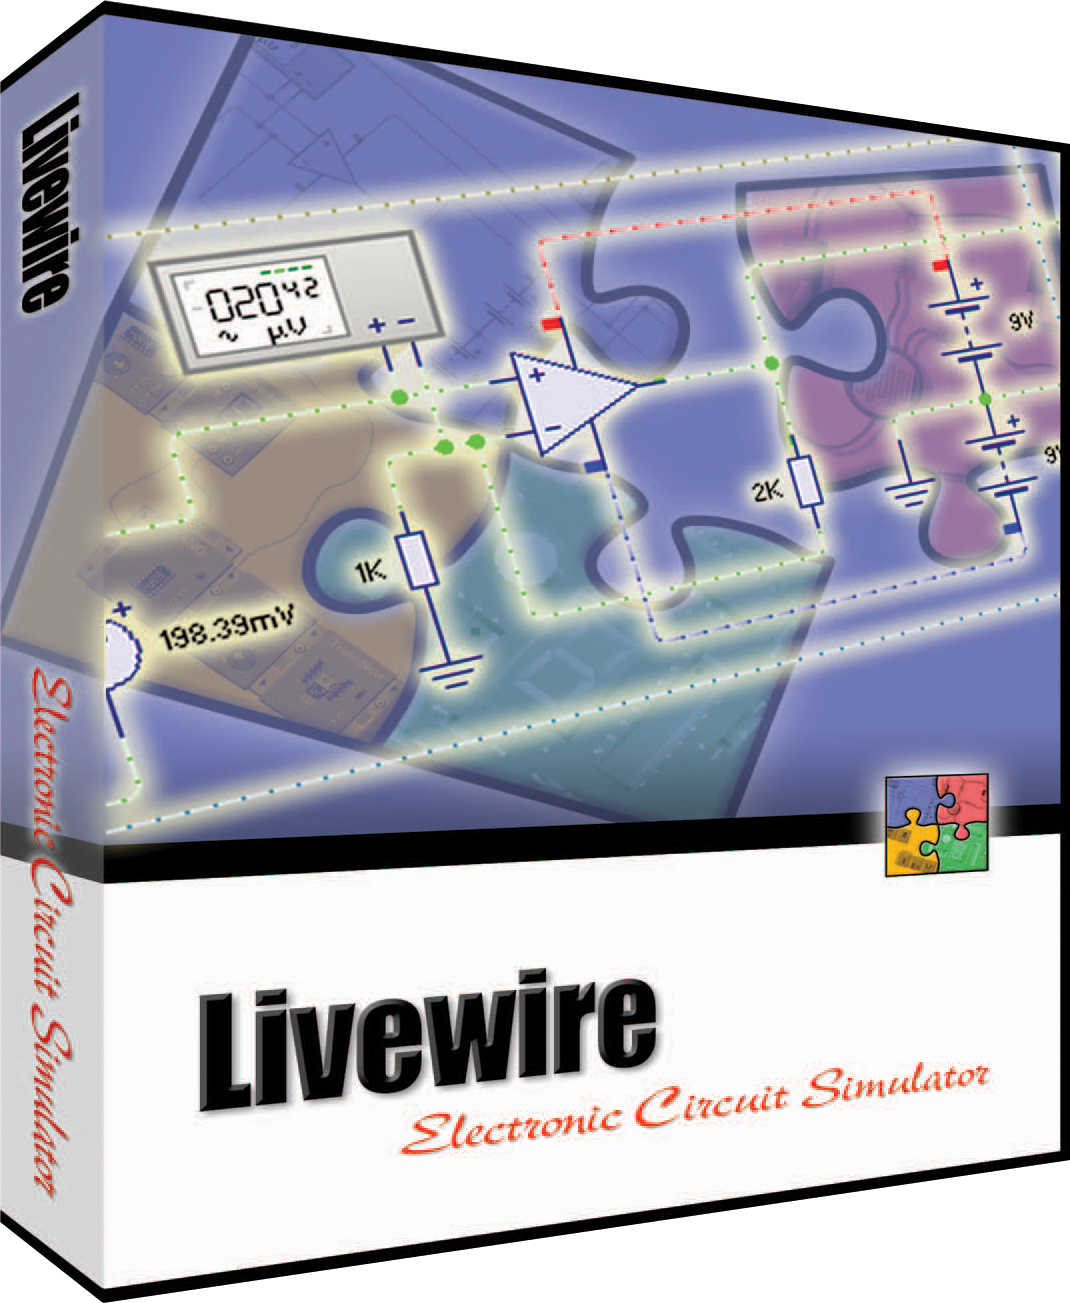 Download Livewire Full Crack Electronic Circuit Simulator Lighthouse Contention